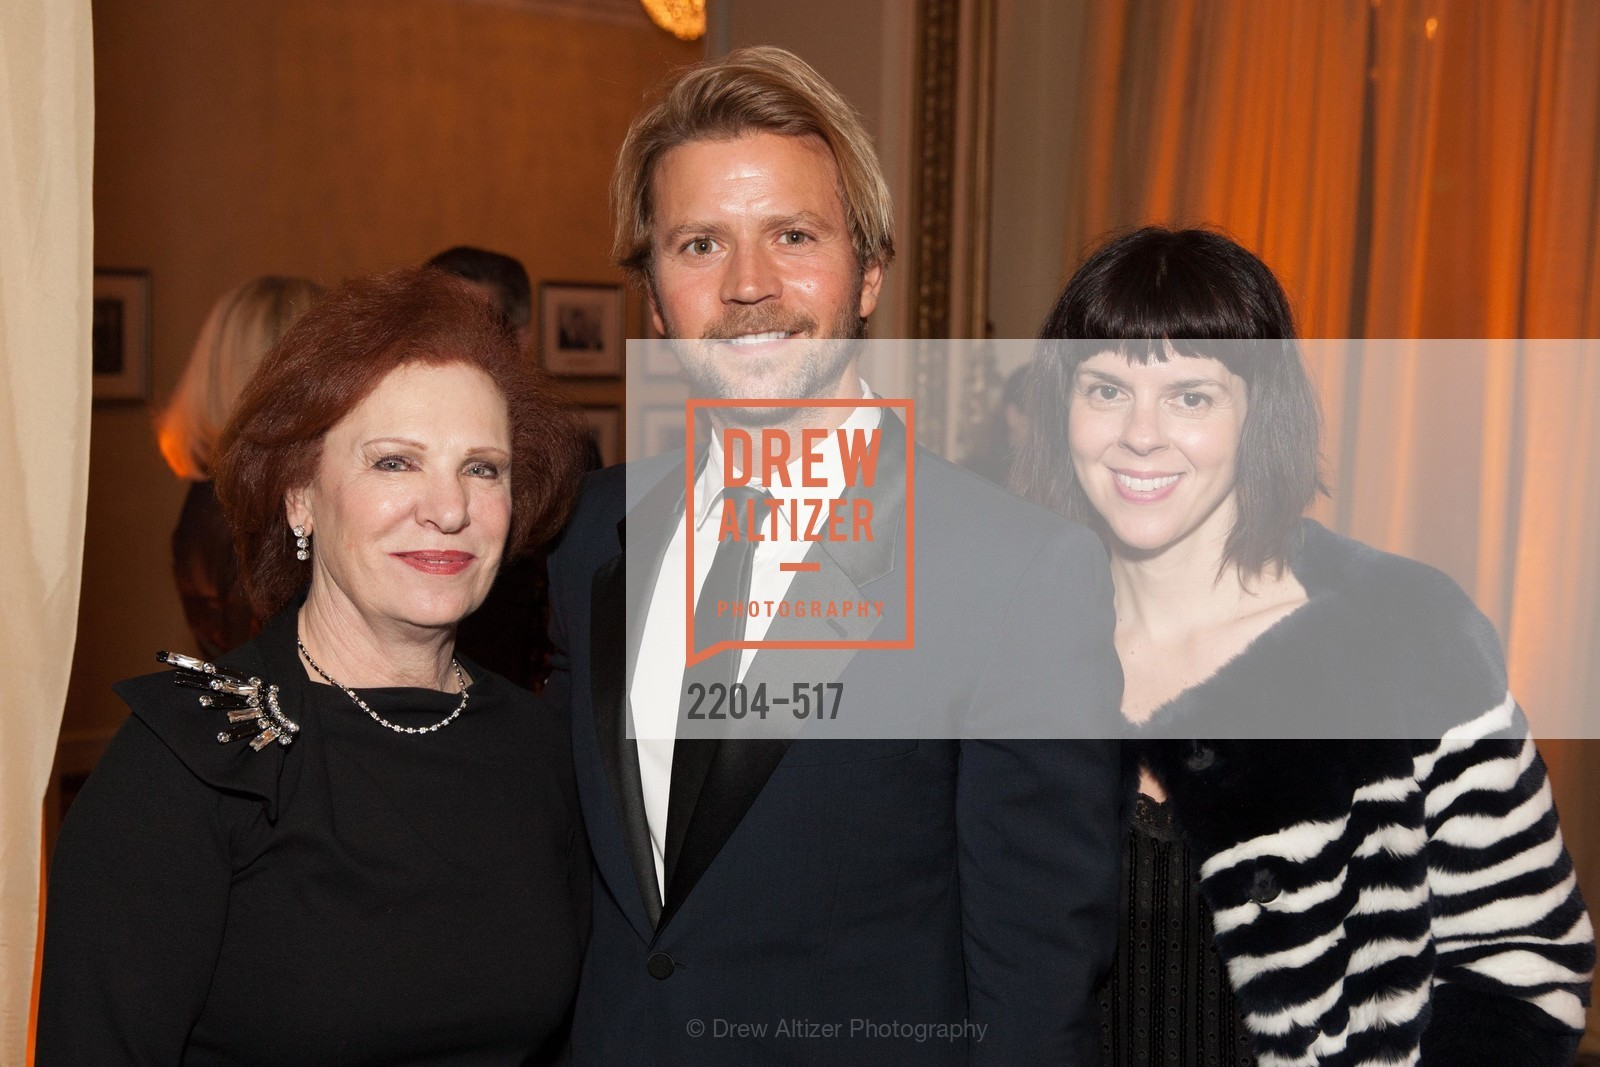 Romana Bracco, Louis Cortes, Joanna Calonico, SAN FRANCISCO OPERA GUILD Presents POPera, US. US, April 10th, 2014,Drew Altizer, Drew Altizer Photography, full-service agency, private events, San Francisco photographer, photographer california